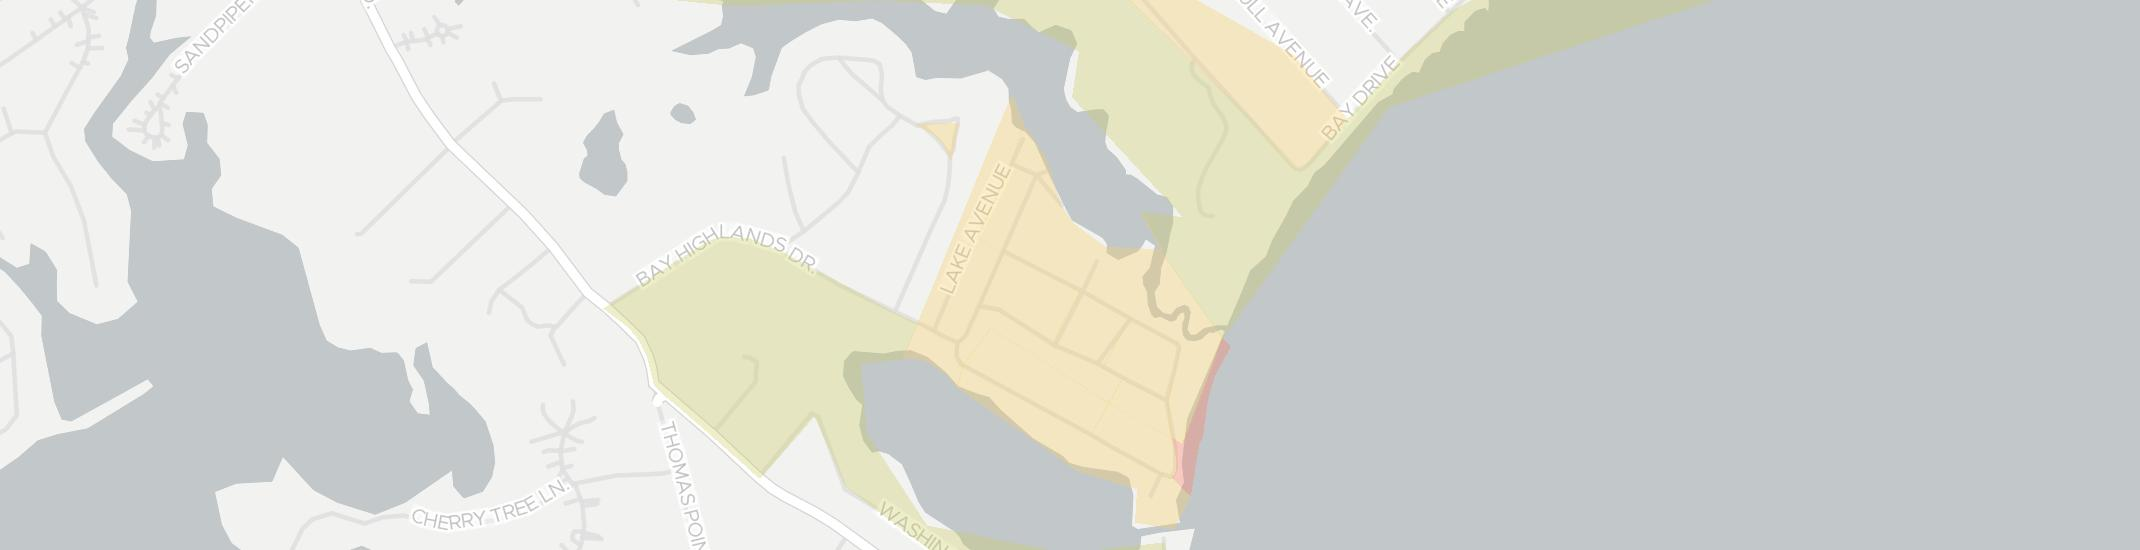 Highland Beach Internet Competition Map. Click for interactive map.